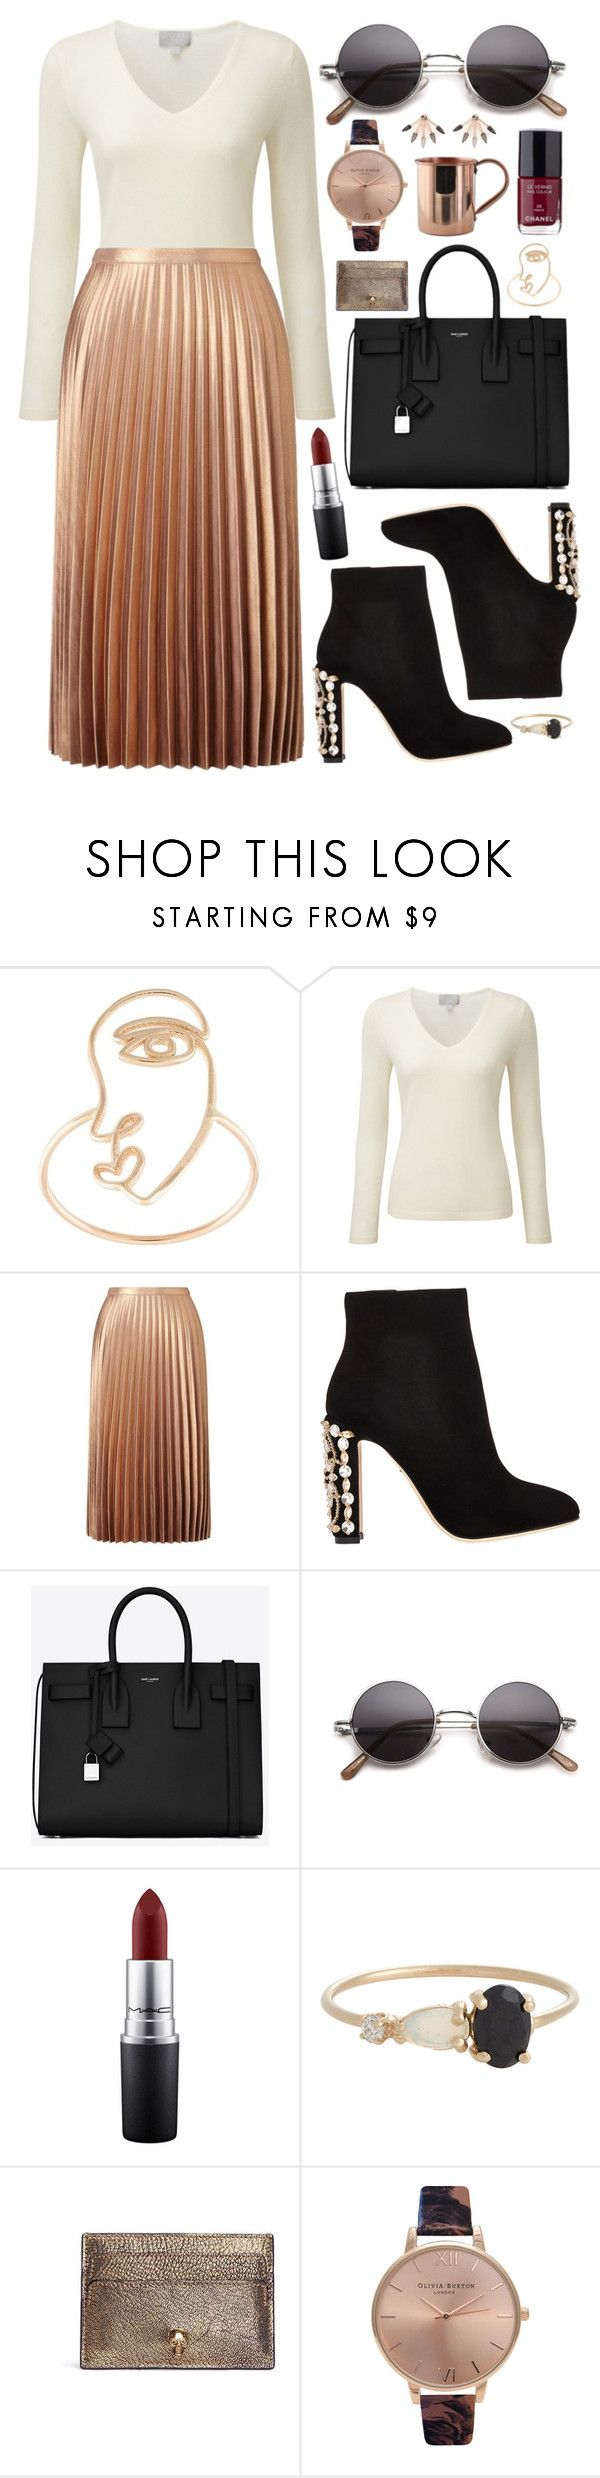 """""""Untitled #626"""" by clary94 ❤ liked on Polyvore featuring Sarah & Sebastian, Pure Collection, Miss Selfridge, Dolce&Gabbana, Yves Saint Laurent, MAC Cosmetics, Loren Stewart, Chanel, Alexander McQueen and Topshop"""